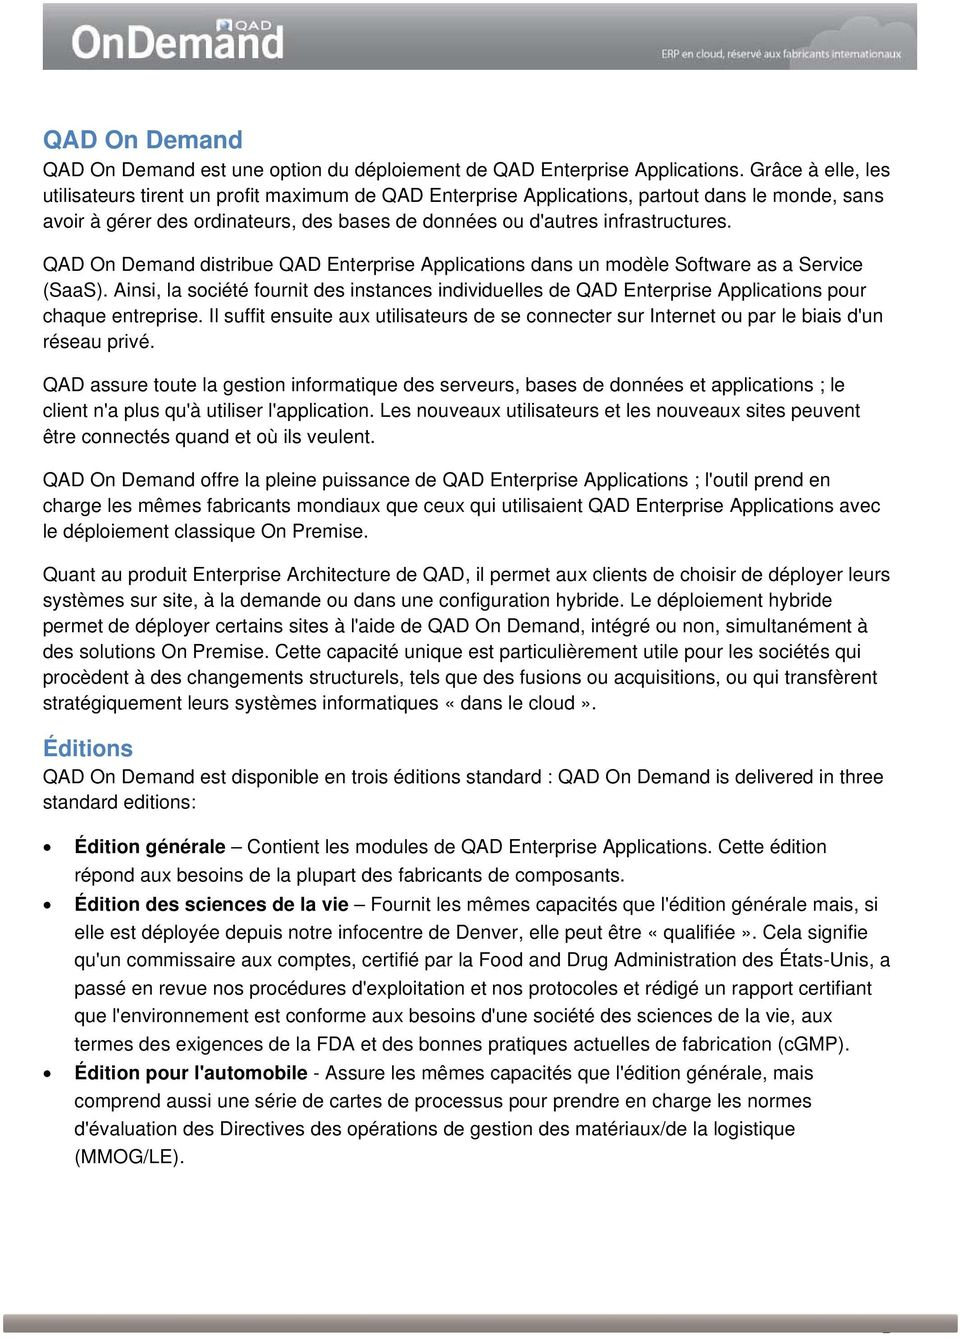 QAD On Demand distribue QAD Enterprise Applications dans un modèle Software as a Service (SaaS).